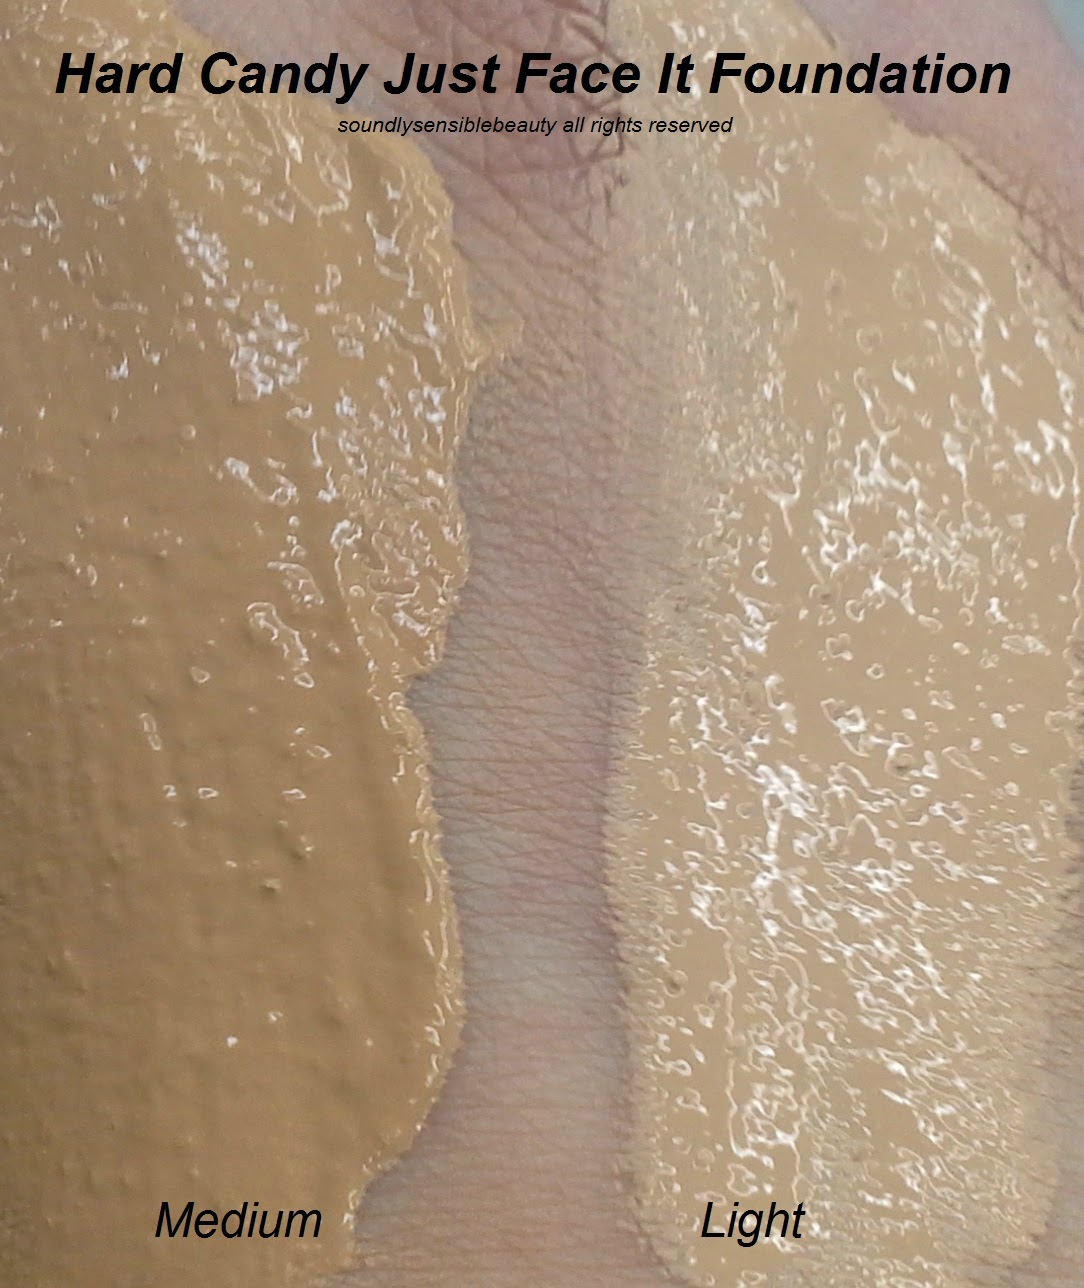 Hard Candy Just Face It 4-in-1 Foundation; Review & Swatches of Shades Light & Medium